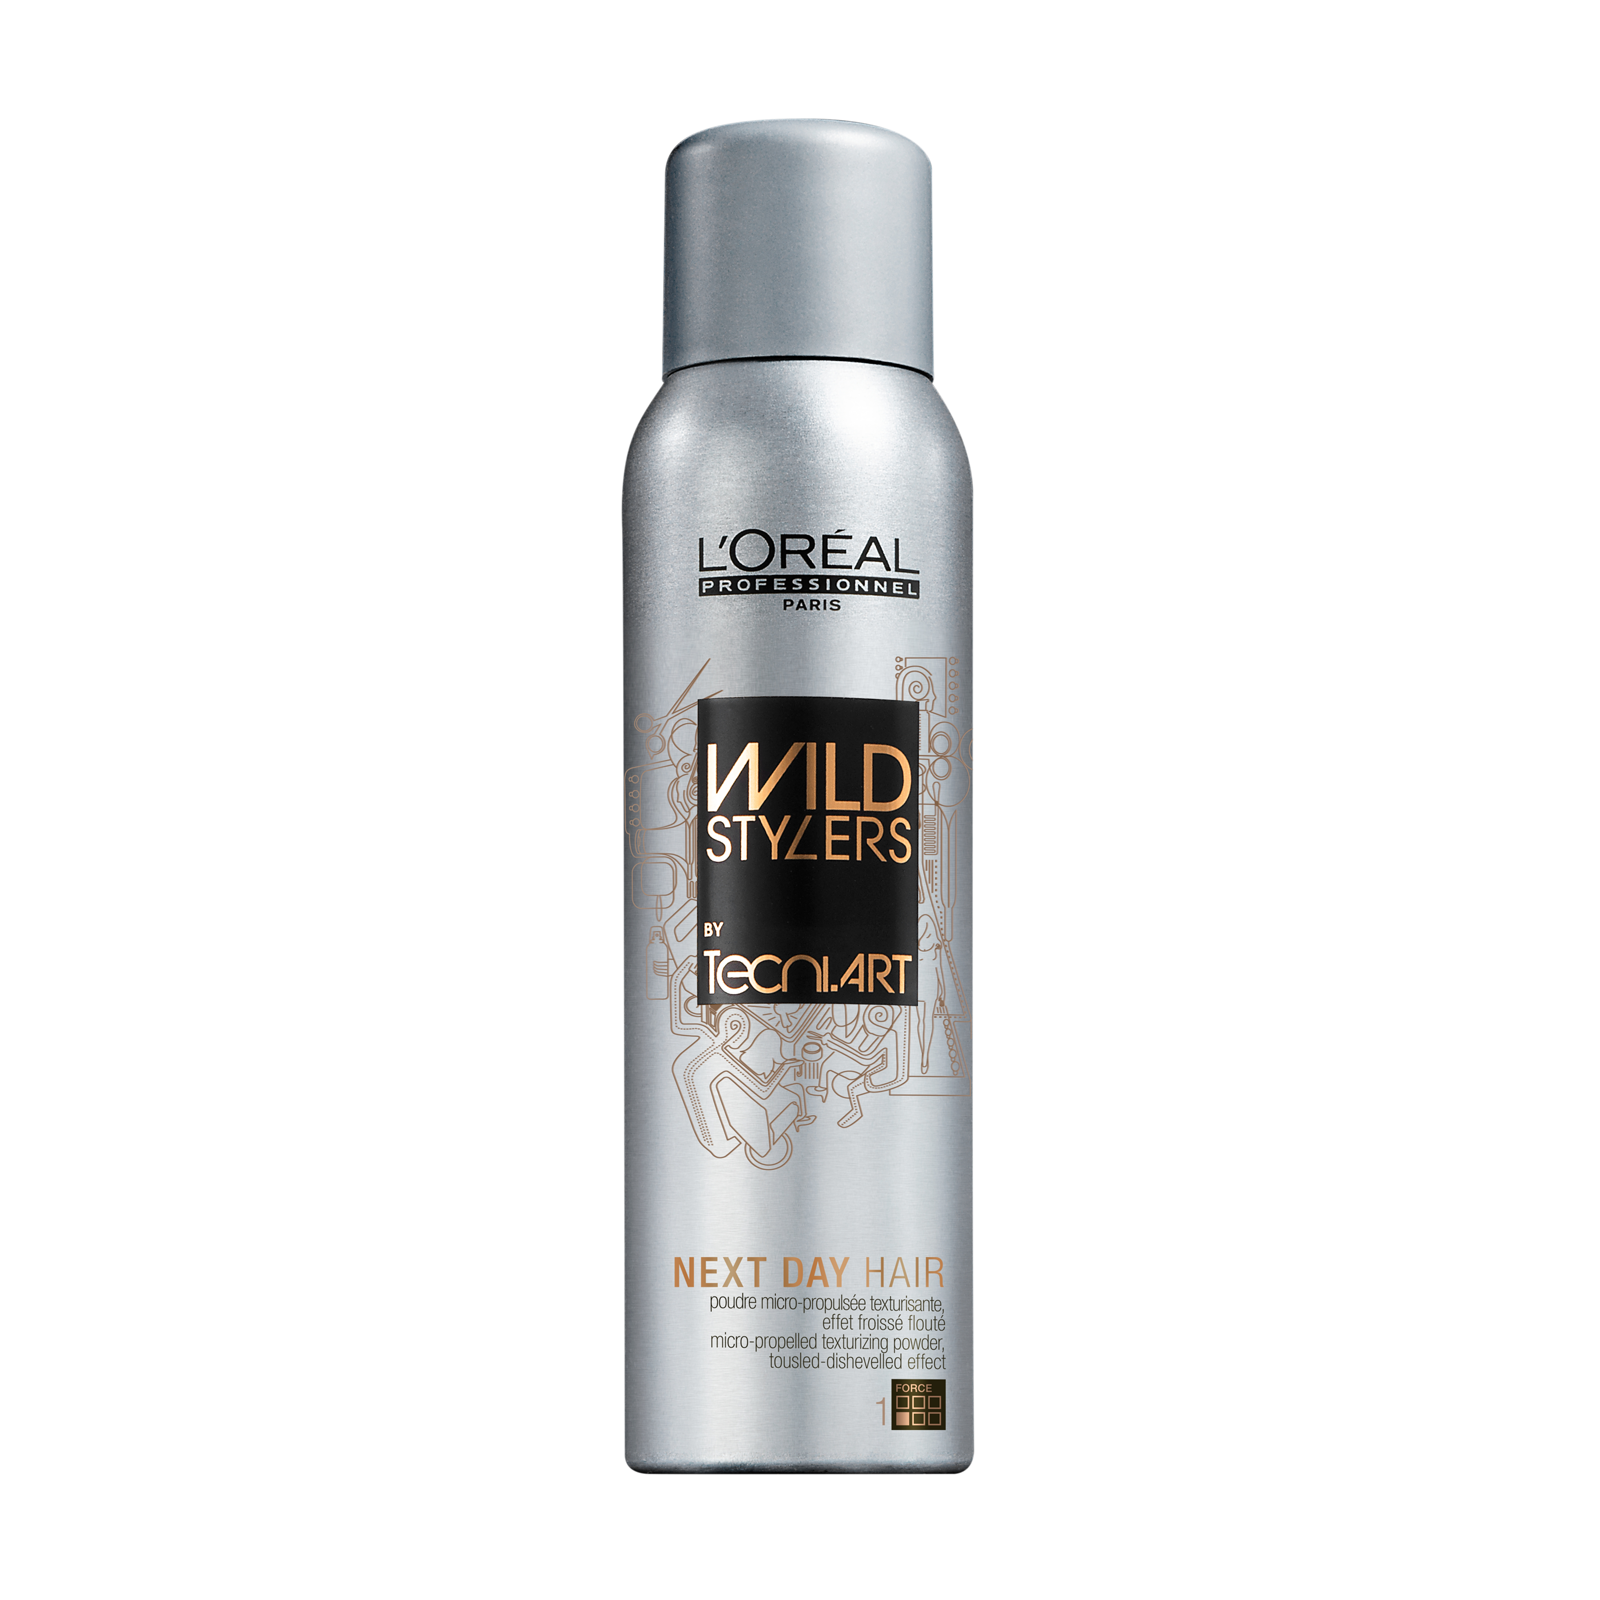 L'OREAL Wild Stylers Tecni Art Next Day Hair 250ml